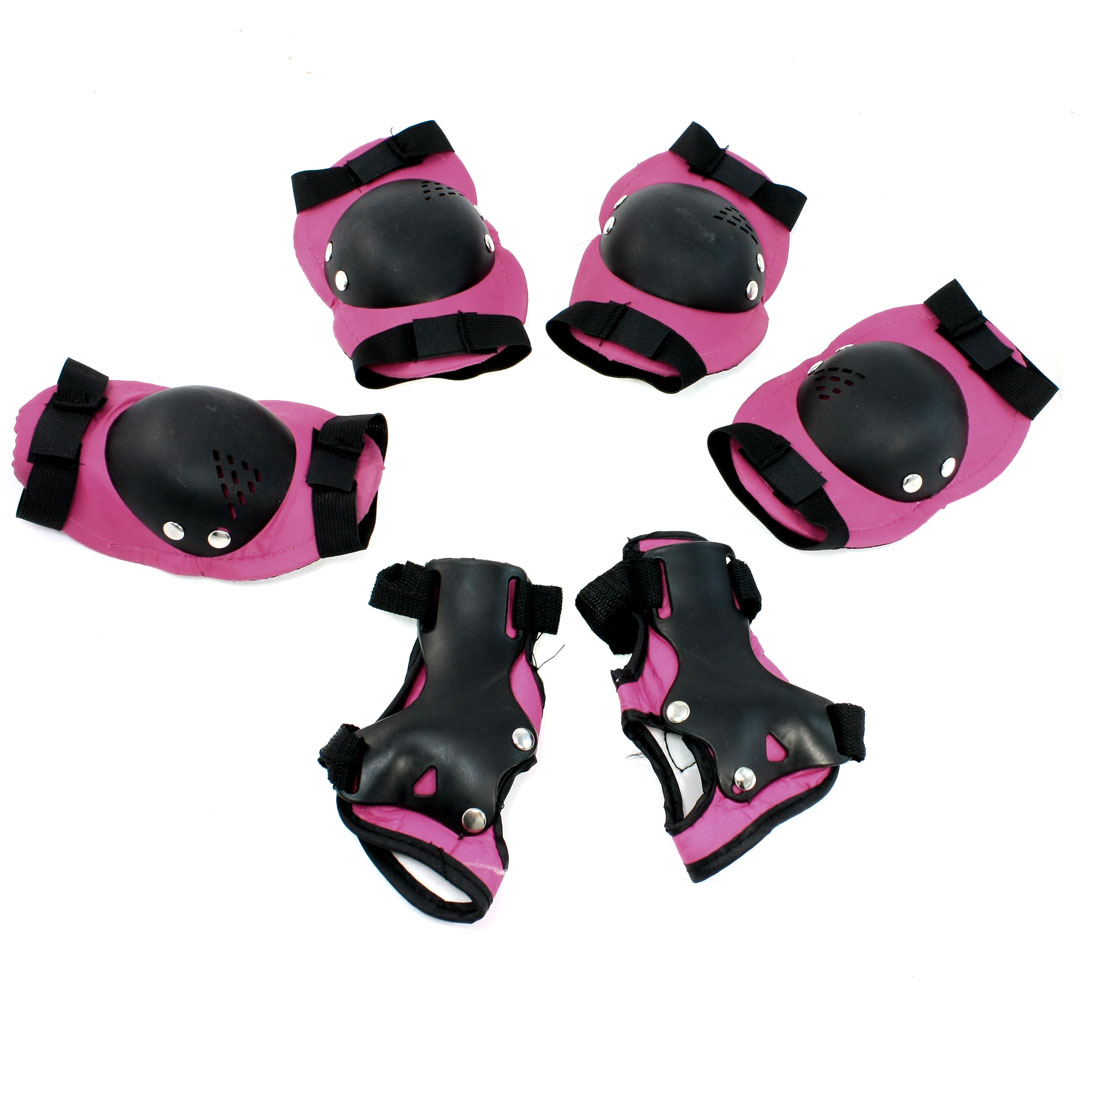 Children Skating Skiing Palm Elbow Knee Support Protector Pad Fuchsia Black Set 6 in 1